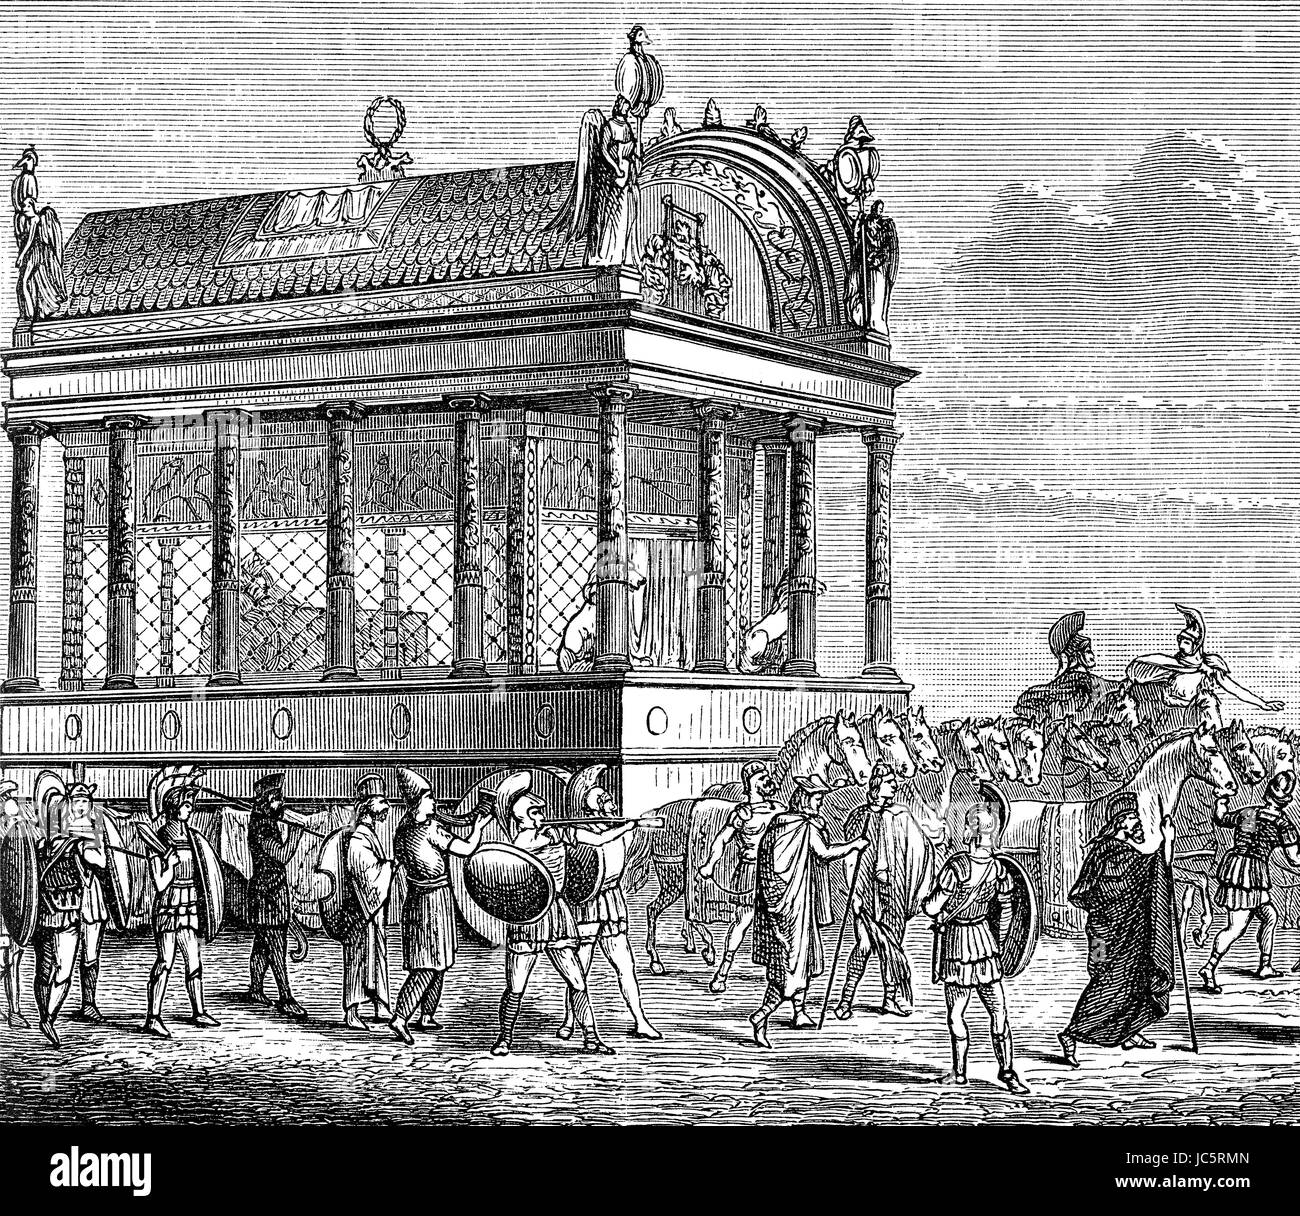 The funeral procession of Alexander the Great - Stock Image